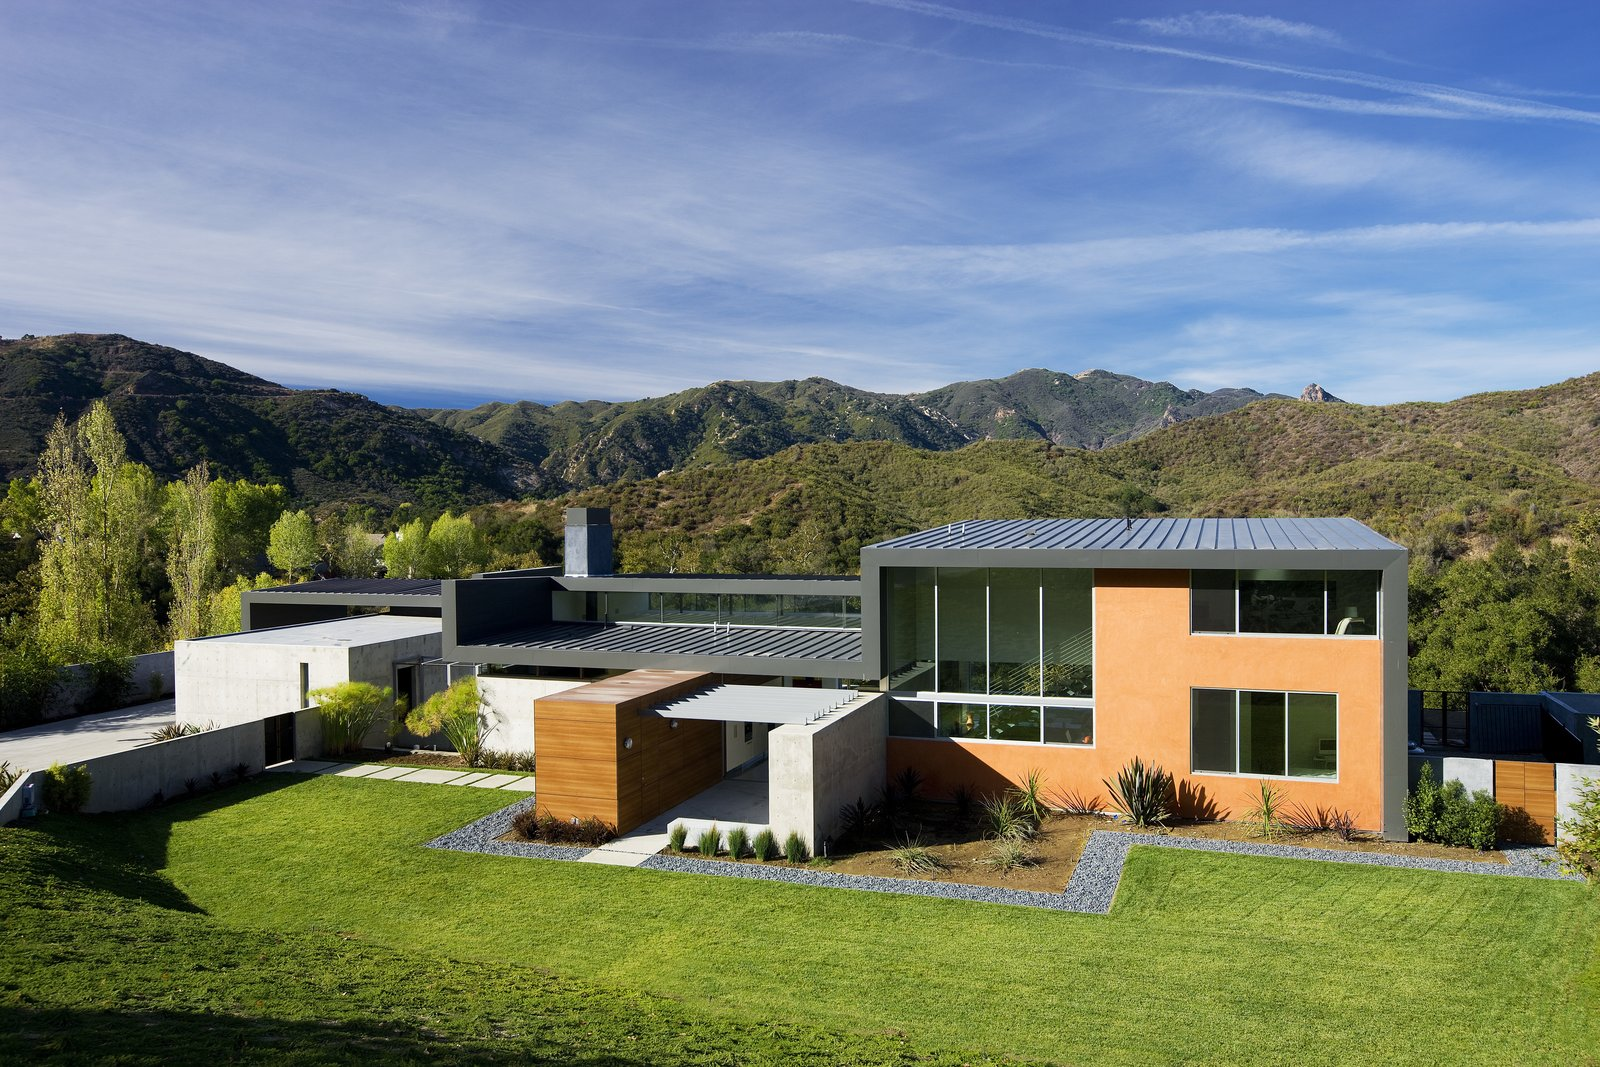 The compound consists of the main house building and the garage and guest room building, which are separated by a courtyard.   Lima Residence by Abramson Teiger Architects